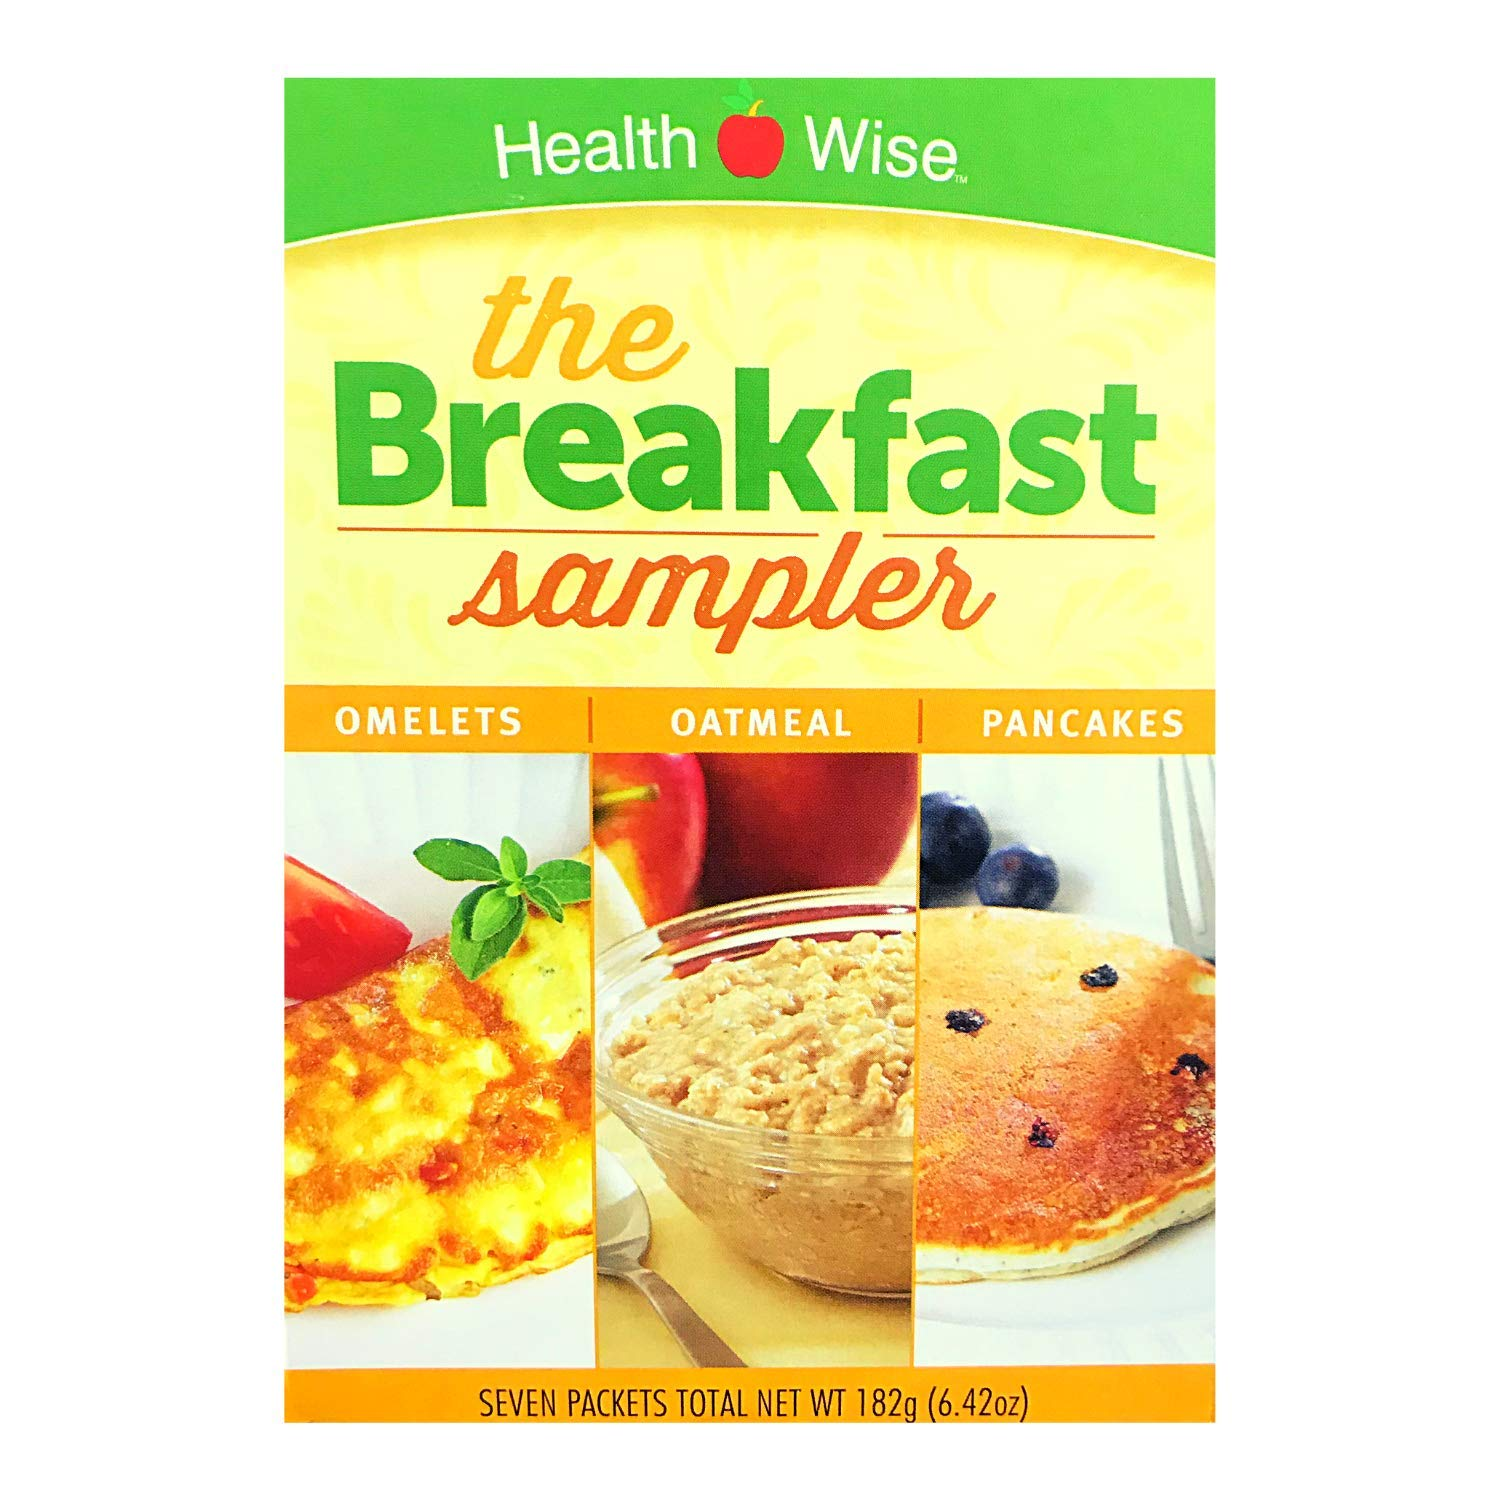 Healthwise - Diet Breakfast Sampler for Weight Loss - High Protein, Low Calorie, Low Carb - Contains Omelets, Oatmeal, and Pancake Mixes (1 Pack)